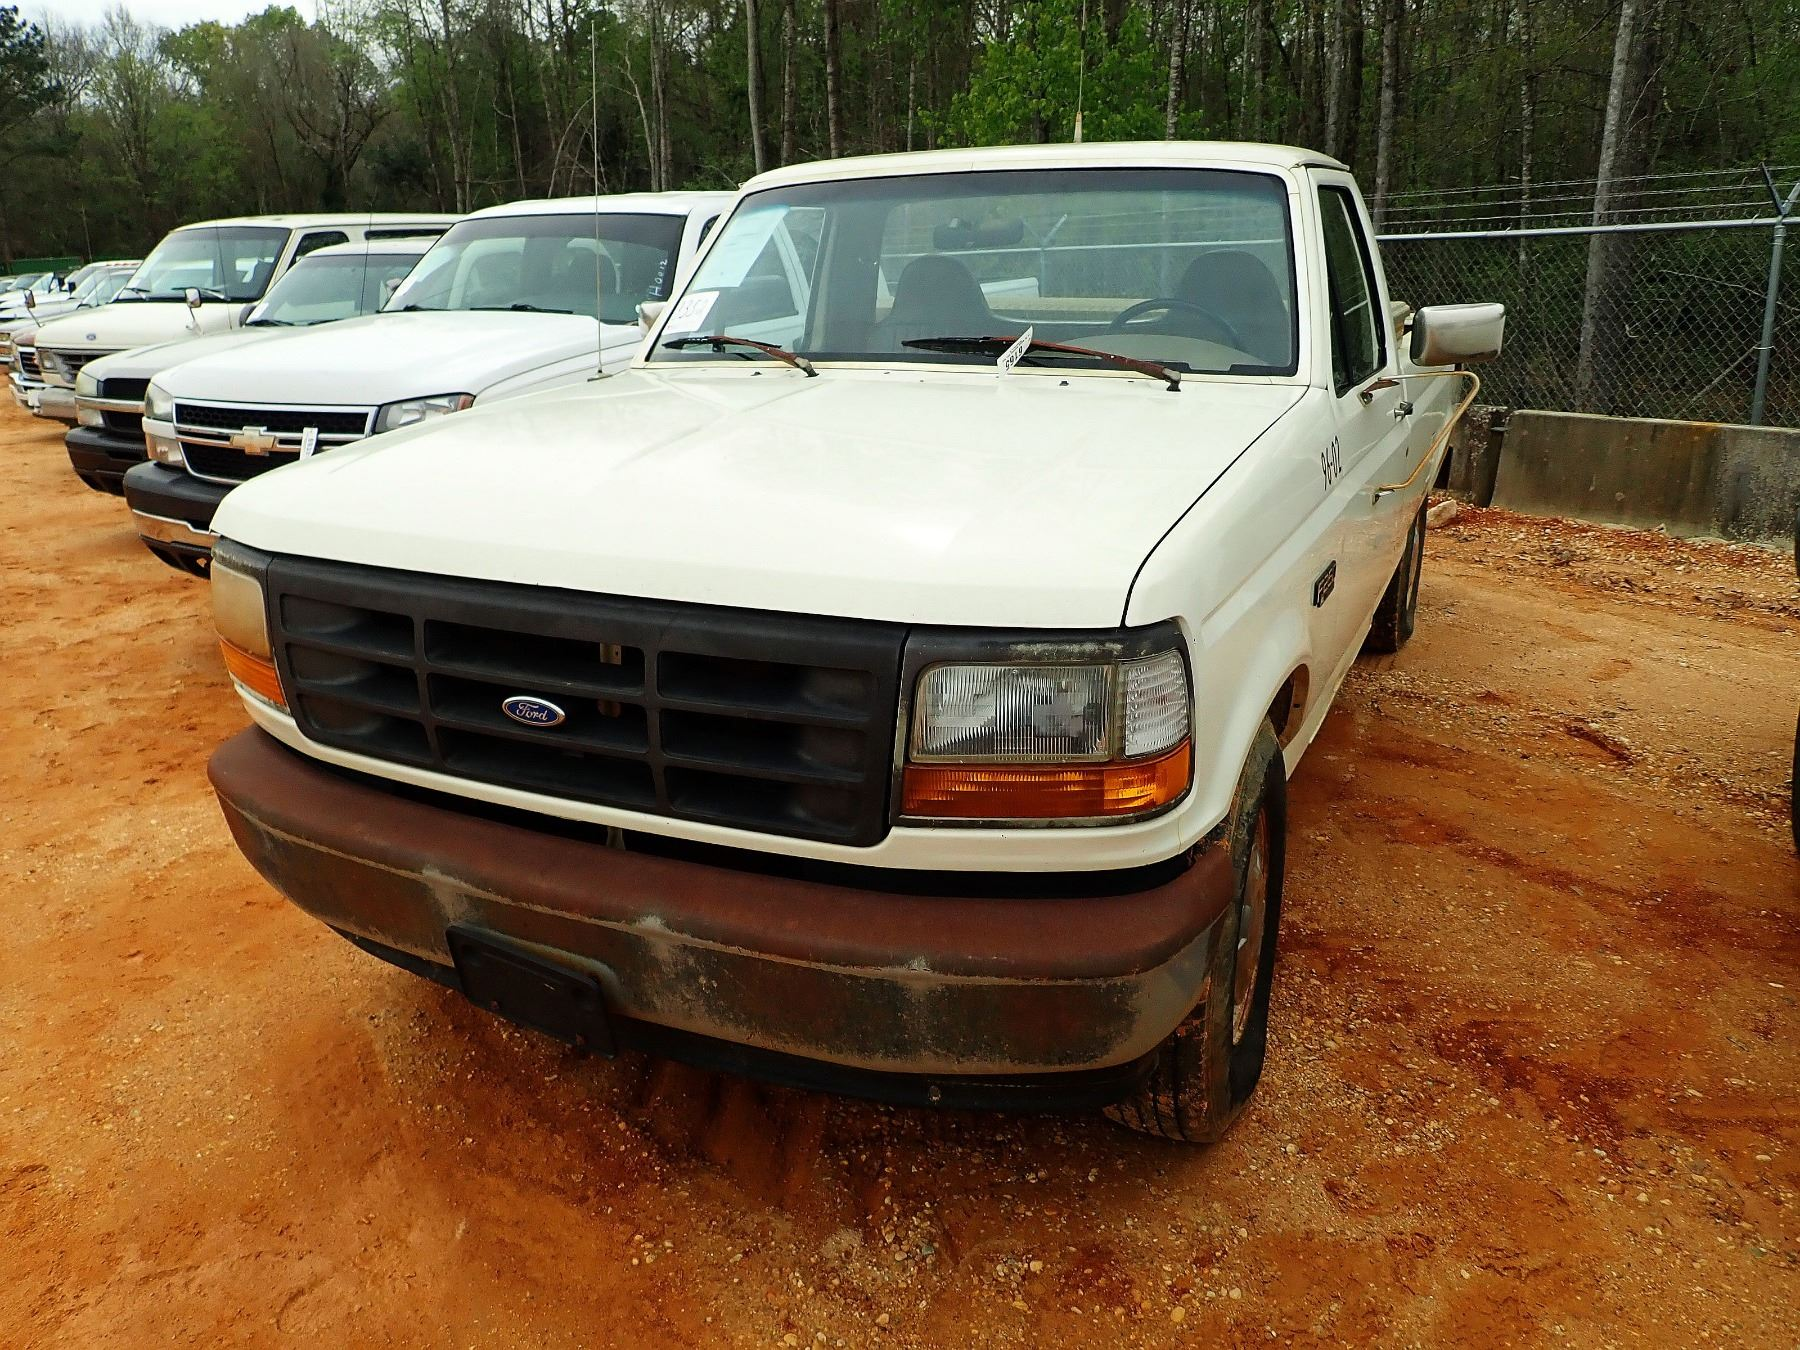 small resolution of image 1 1996 ford f250 pickup vin sn zftef25n4tca71218 gas engine